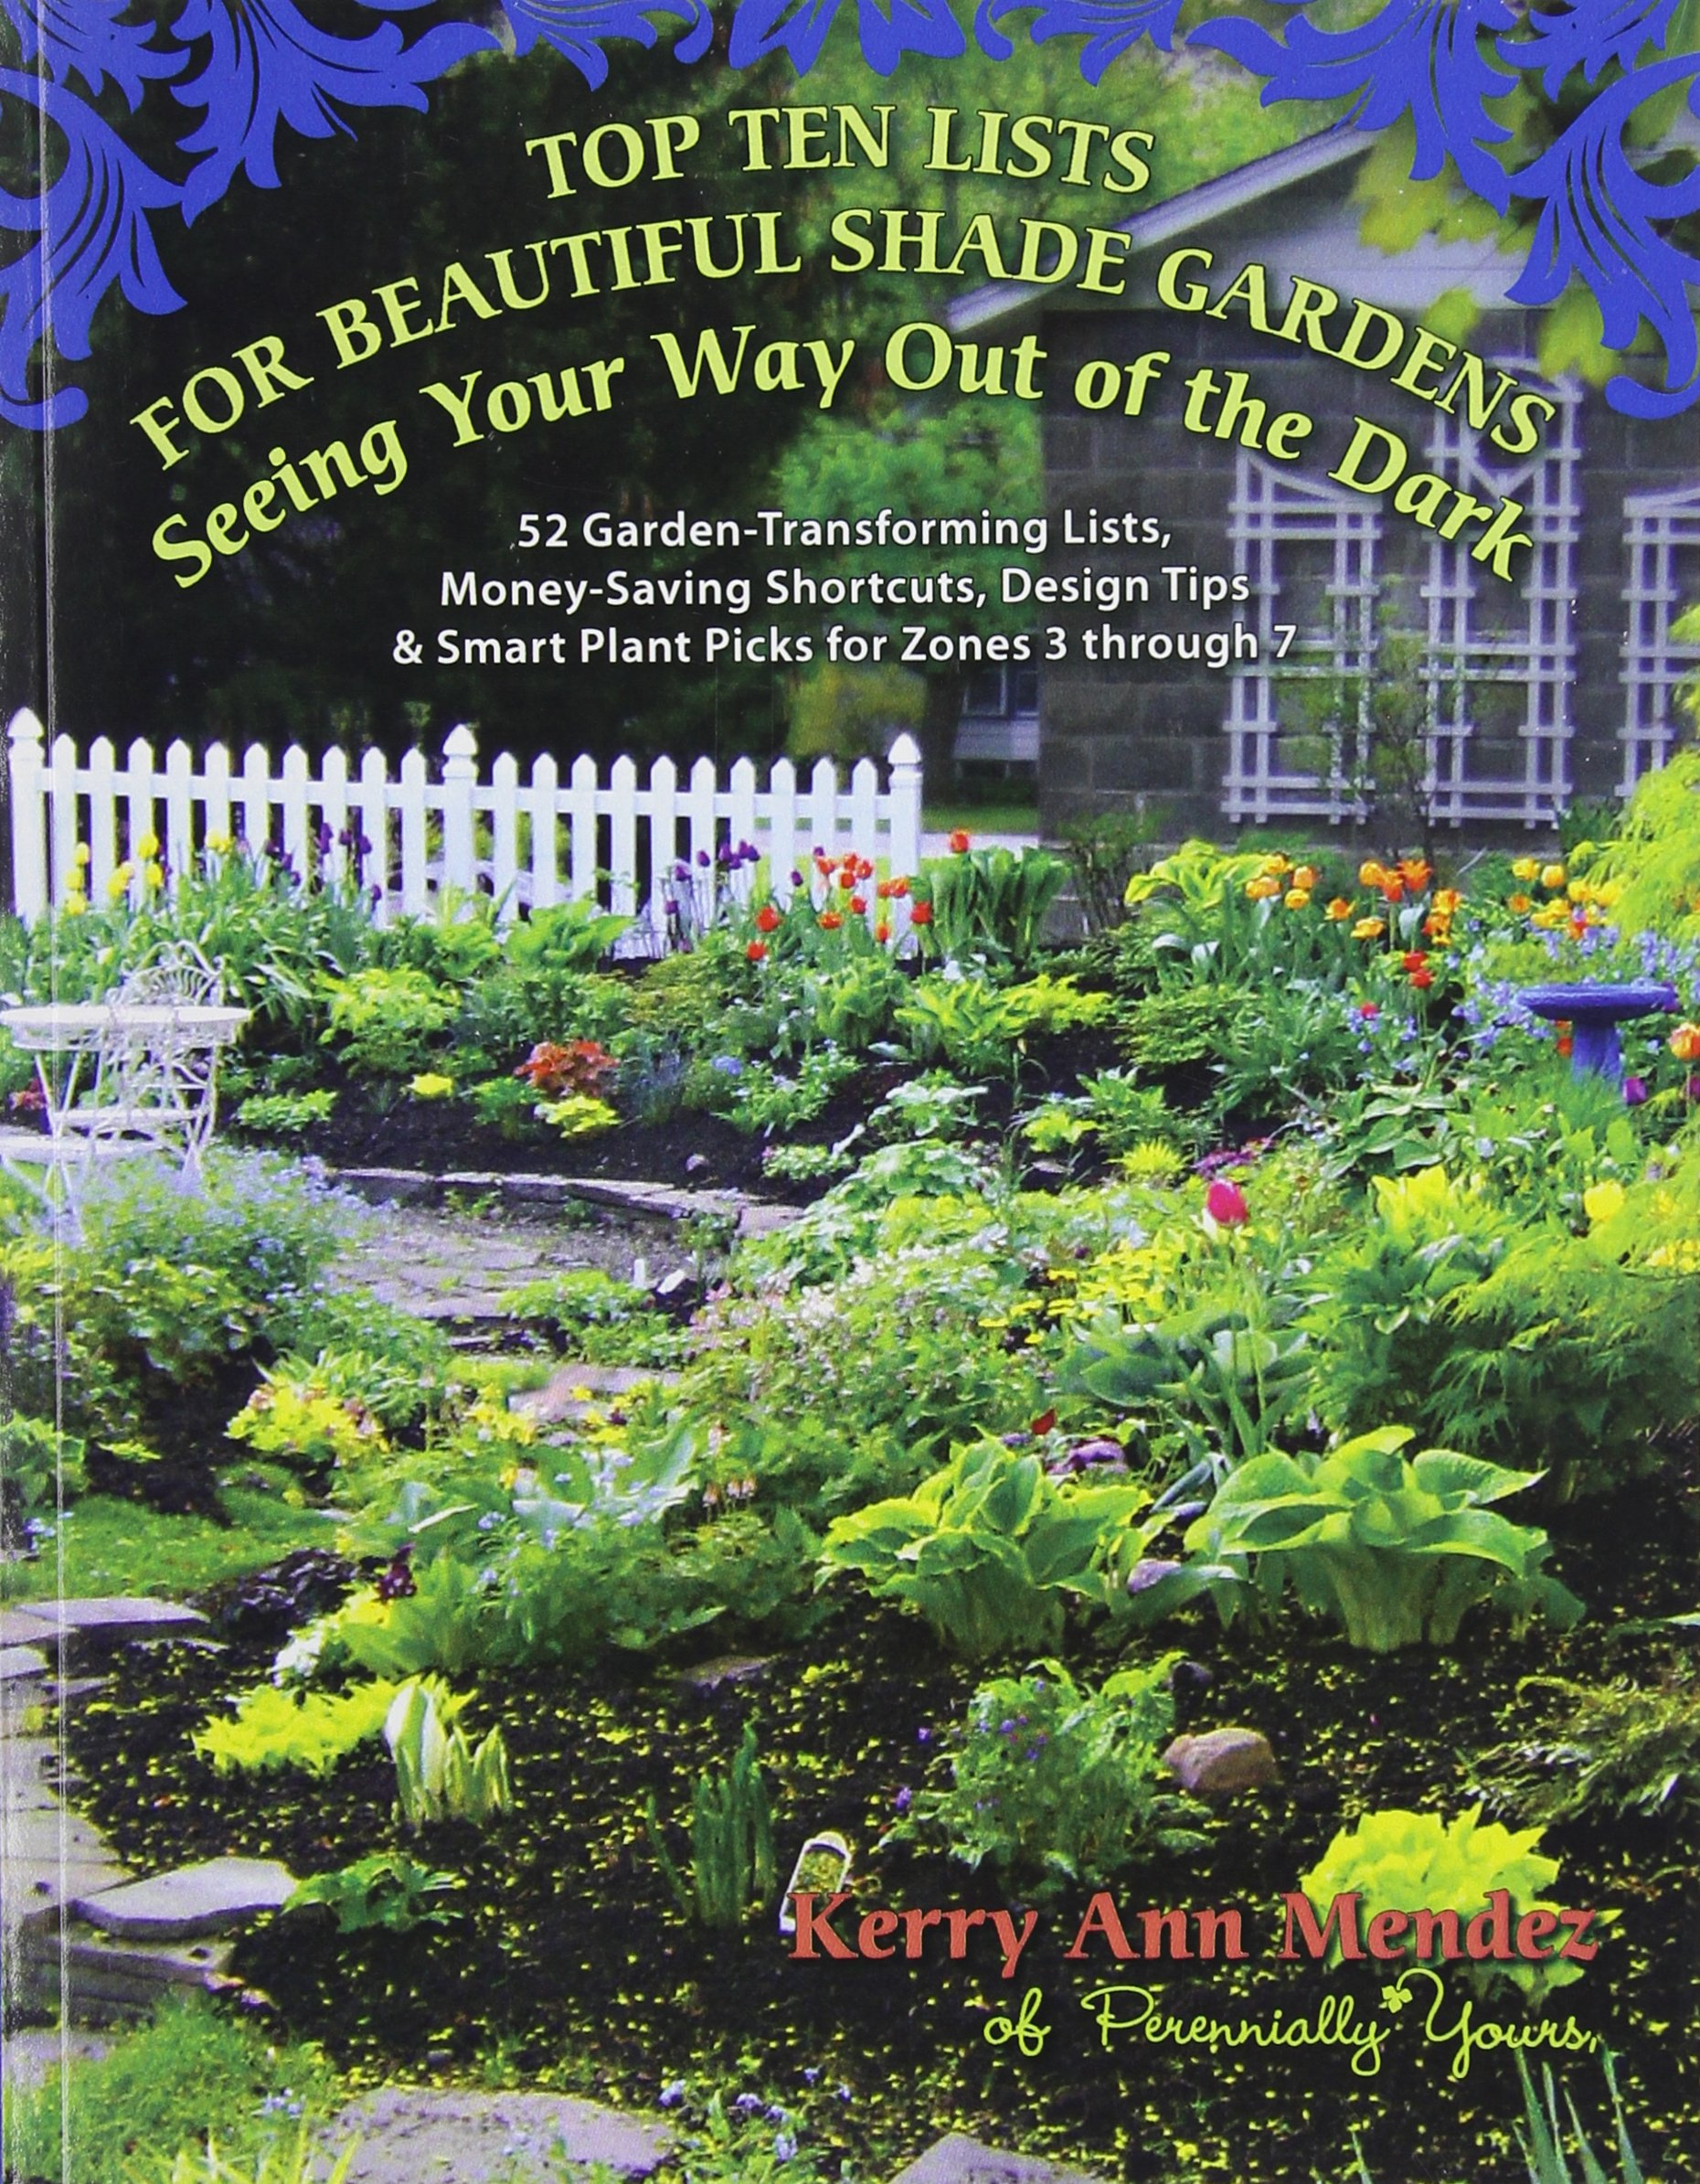 top ten lists for beautiful shade gardens seeing your way out of the dark 52 garden transforming lists money saving shortcuts design tips smart plant - Garden Design Kerry